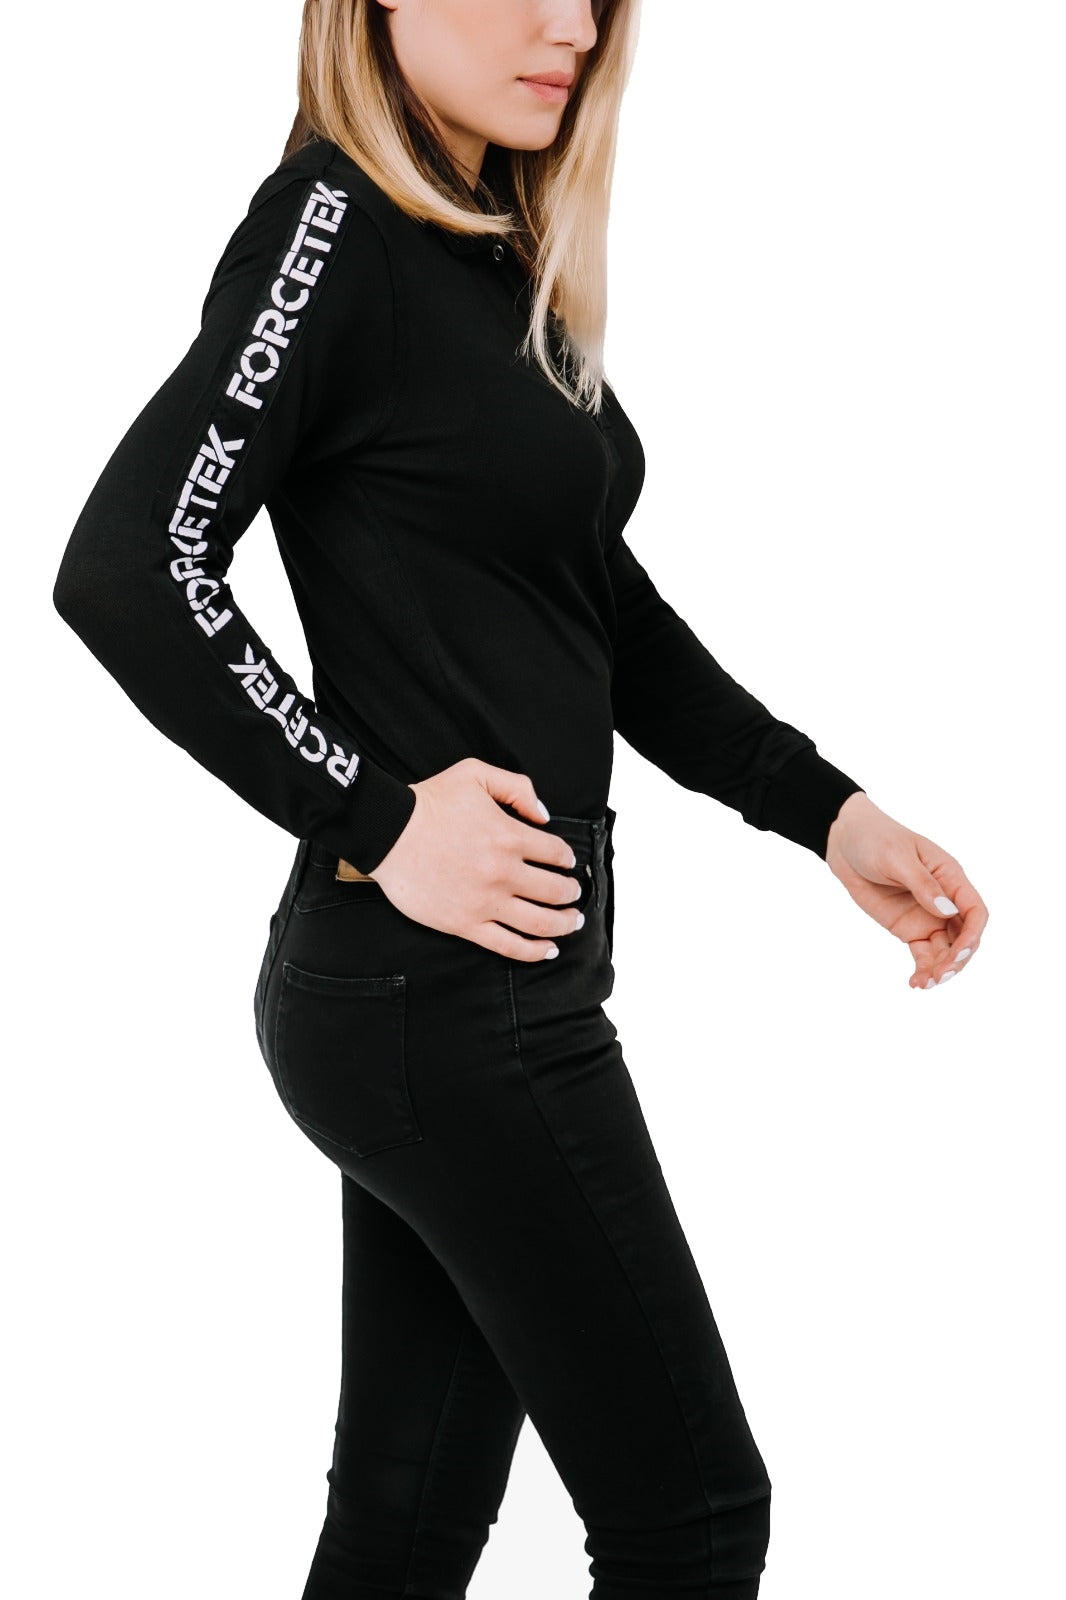 COLD SKIN LONG SLEEVE TRIMMING WOMAN POLO